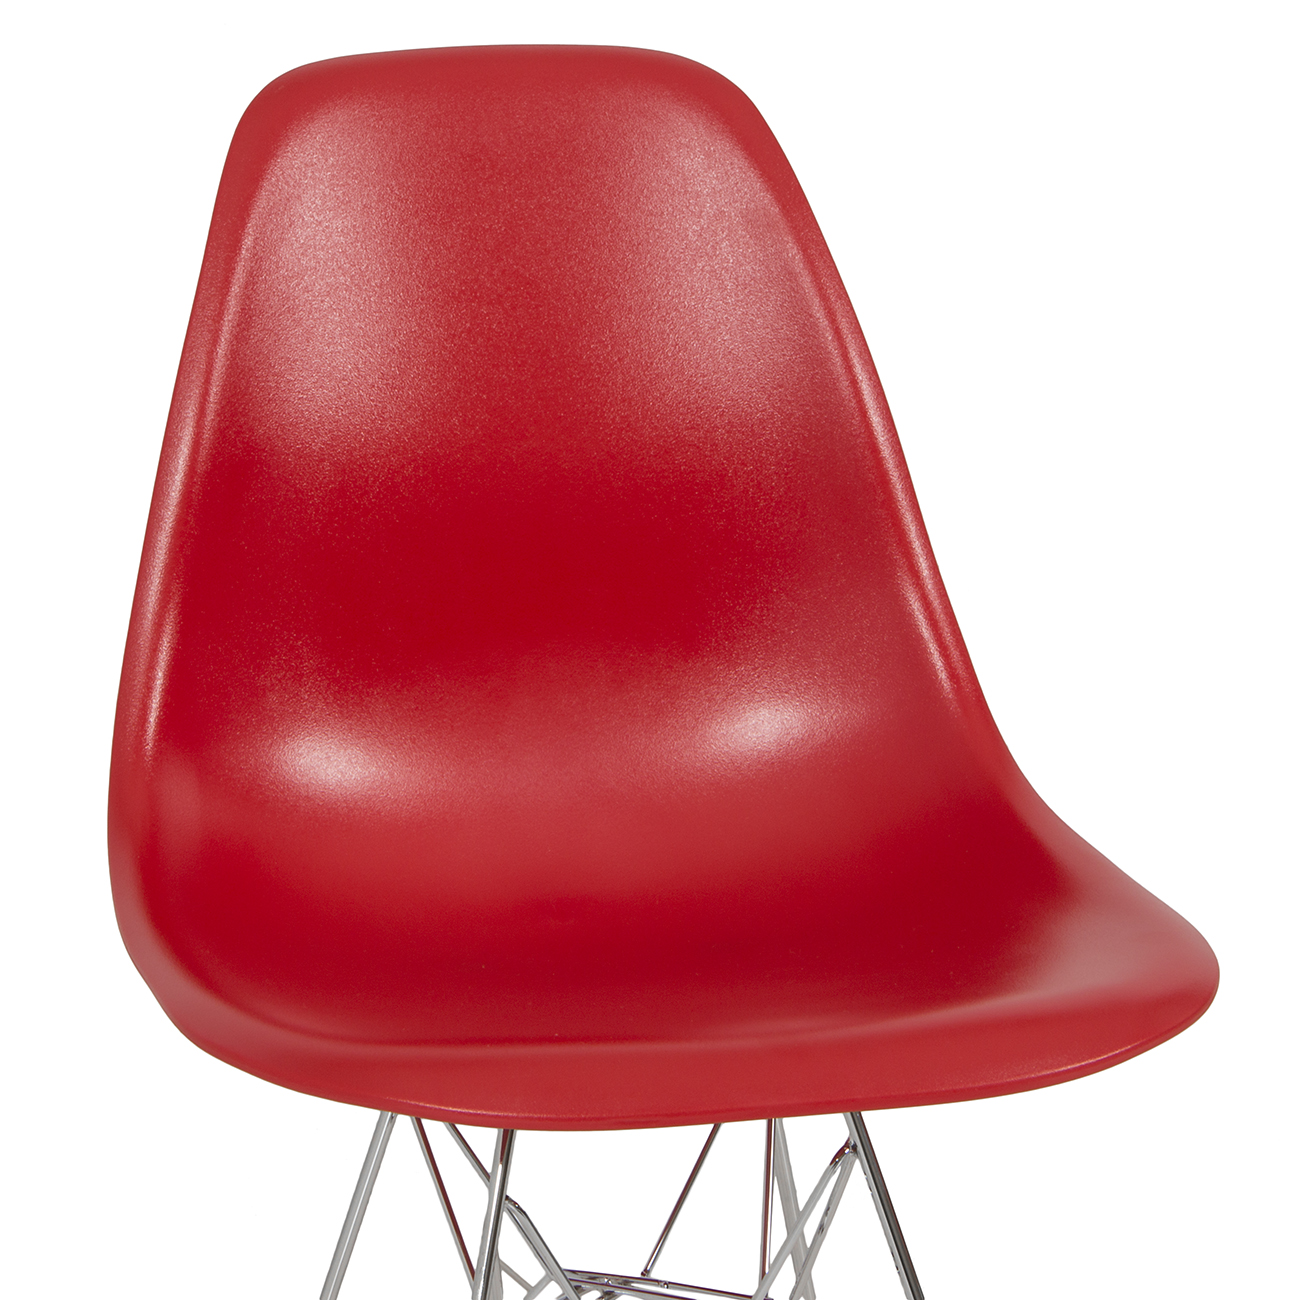 modern plastic chair rv captain chairs 2x eames style dsw eiffel side molded abs